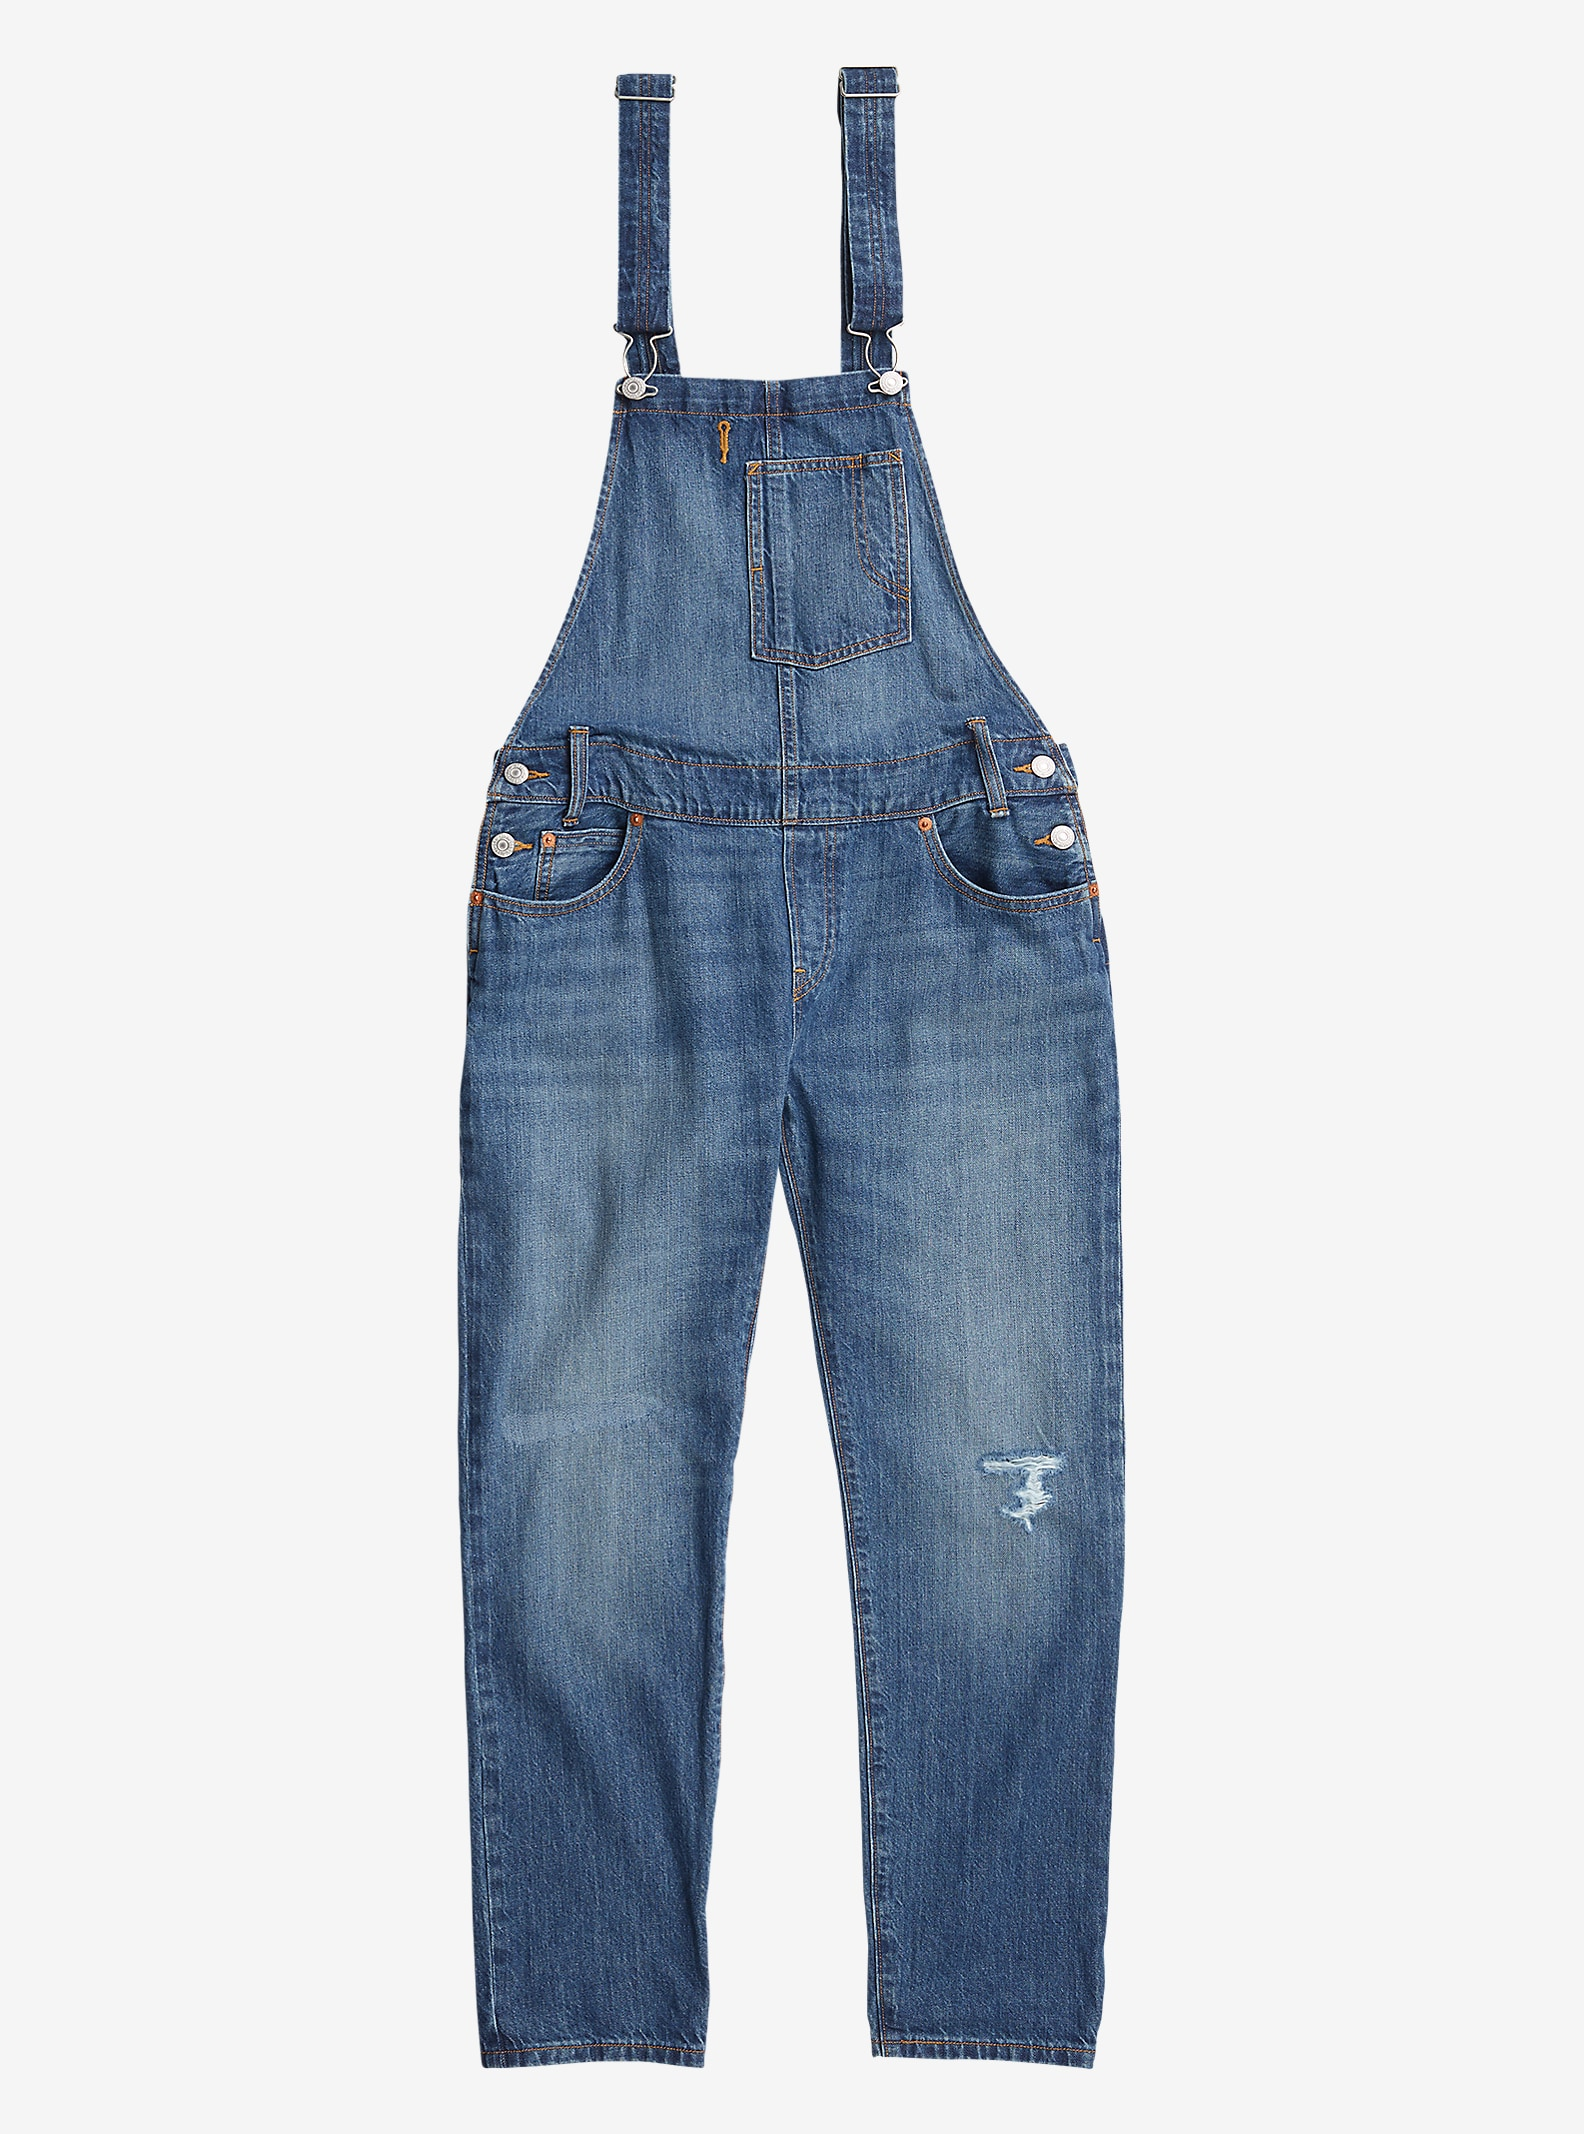 Women's Levi's® Heritage Overalls shown in Denim